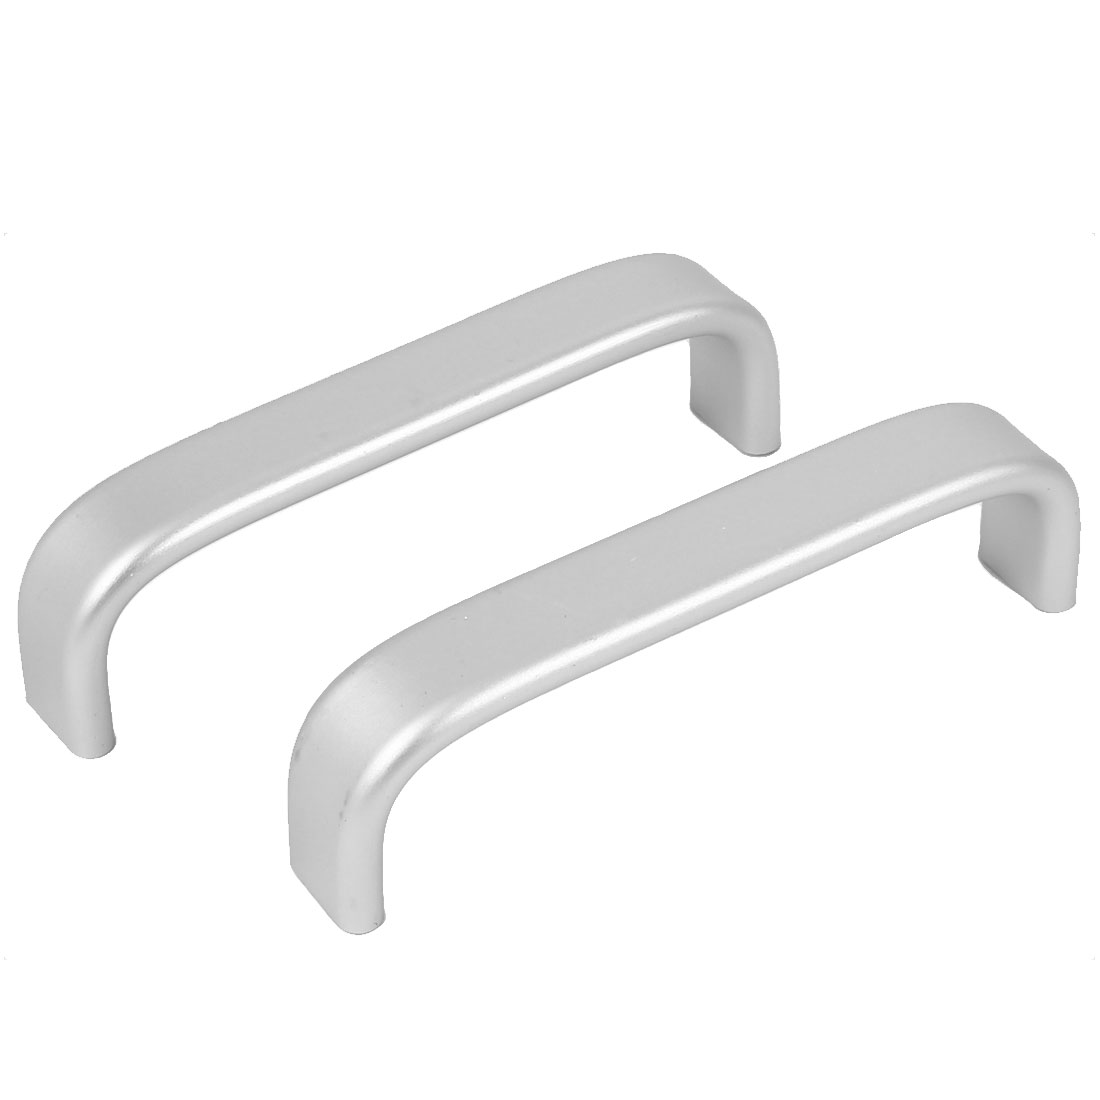 96mm Hole Spacing Doors Dresser Arch Style Pull Handle Silver Tone 2pcs